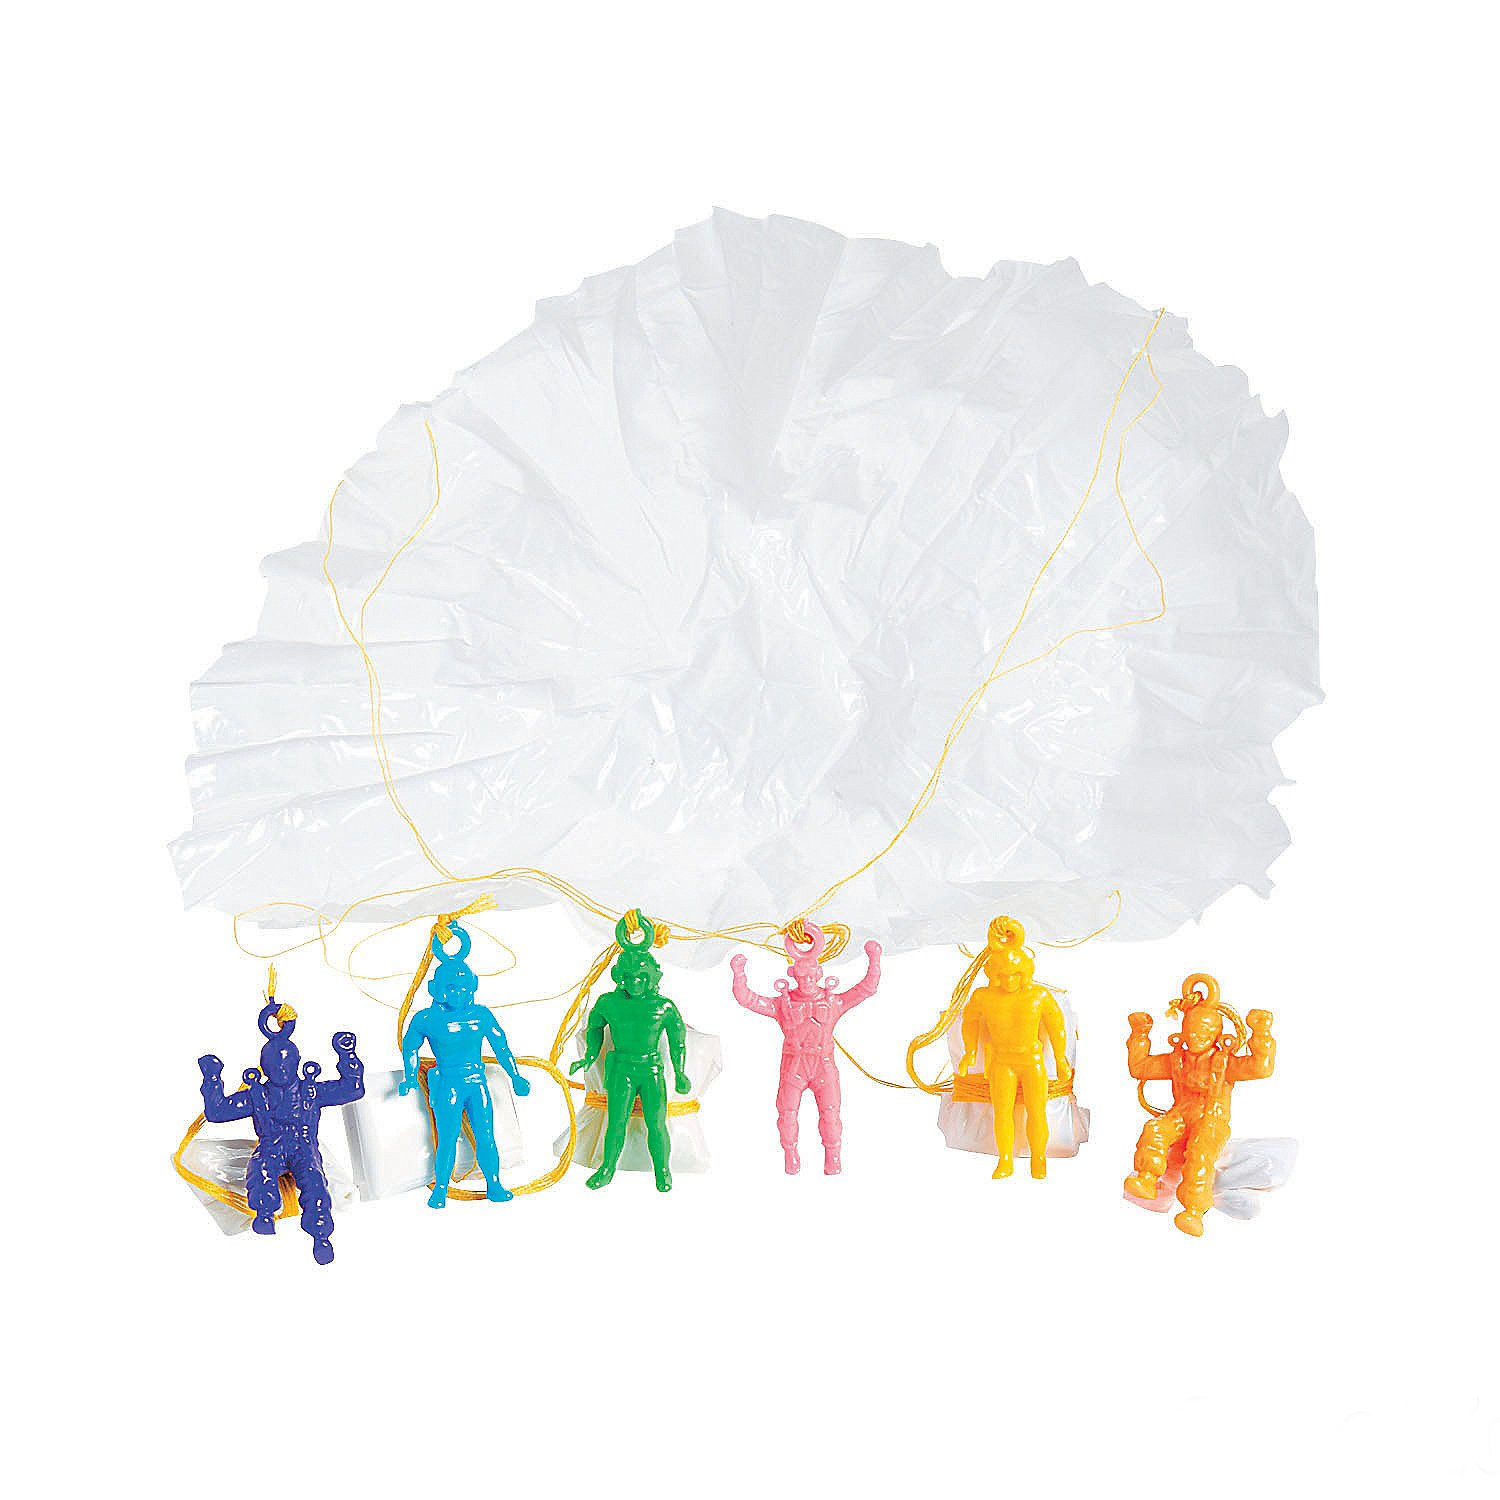 Mini Vinyl Paratroopers - Pack Of 24 - 1.75 Inches Assorted Colors Cool Airborne Action Figures - For Kids Great Party Favors, Bag Stuffers, Fun, Toy, Gift, Prize - By Kidsco